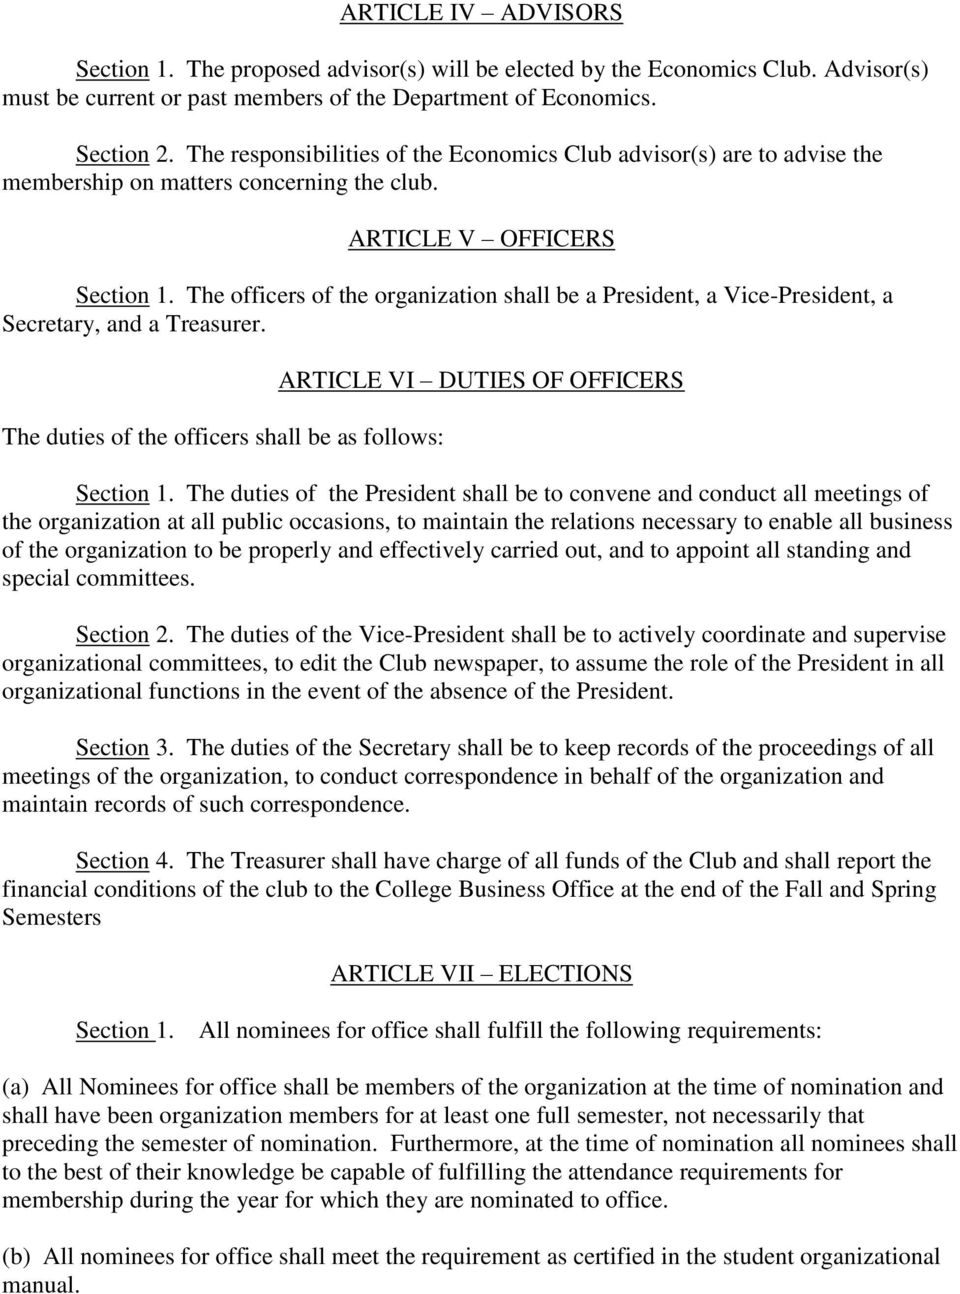 The officers of the organization shall be a President, a Vice-President, a Secretary, and a Treasurer. The duties of the officers shall be as follows: ARTICLE VI DUTIES OF OFFICERS Section 1.